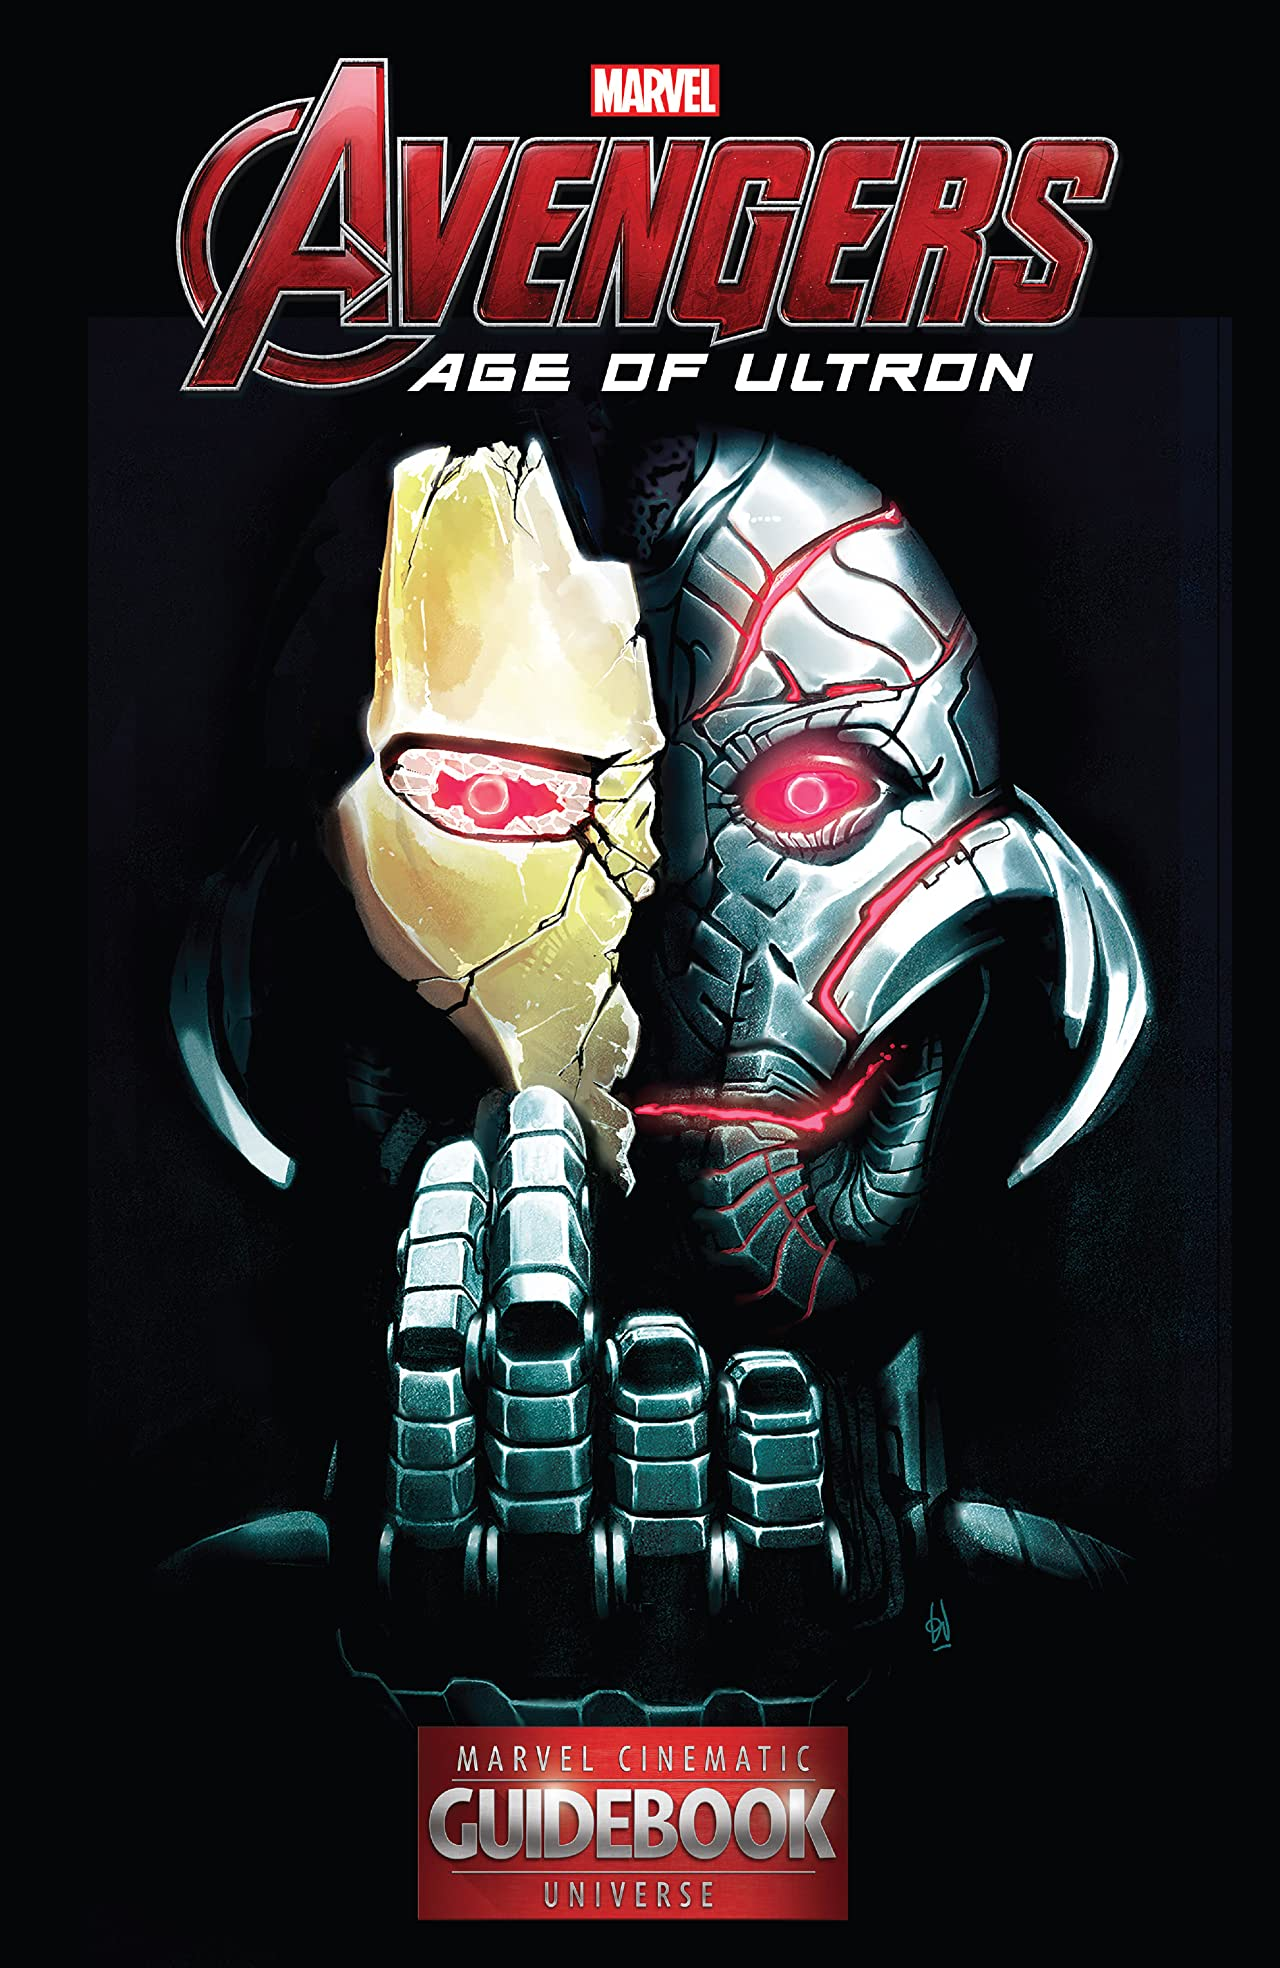 Guidebook to the Marvel Cinematic Universe - Marvel's Avengers: Age Of Ultron #1